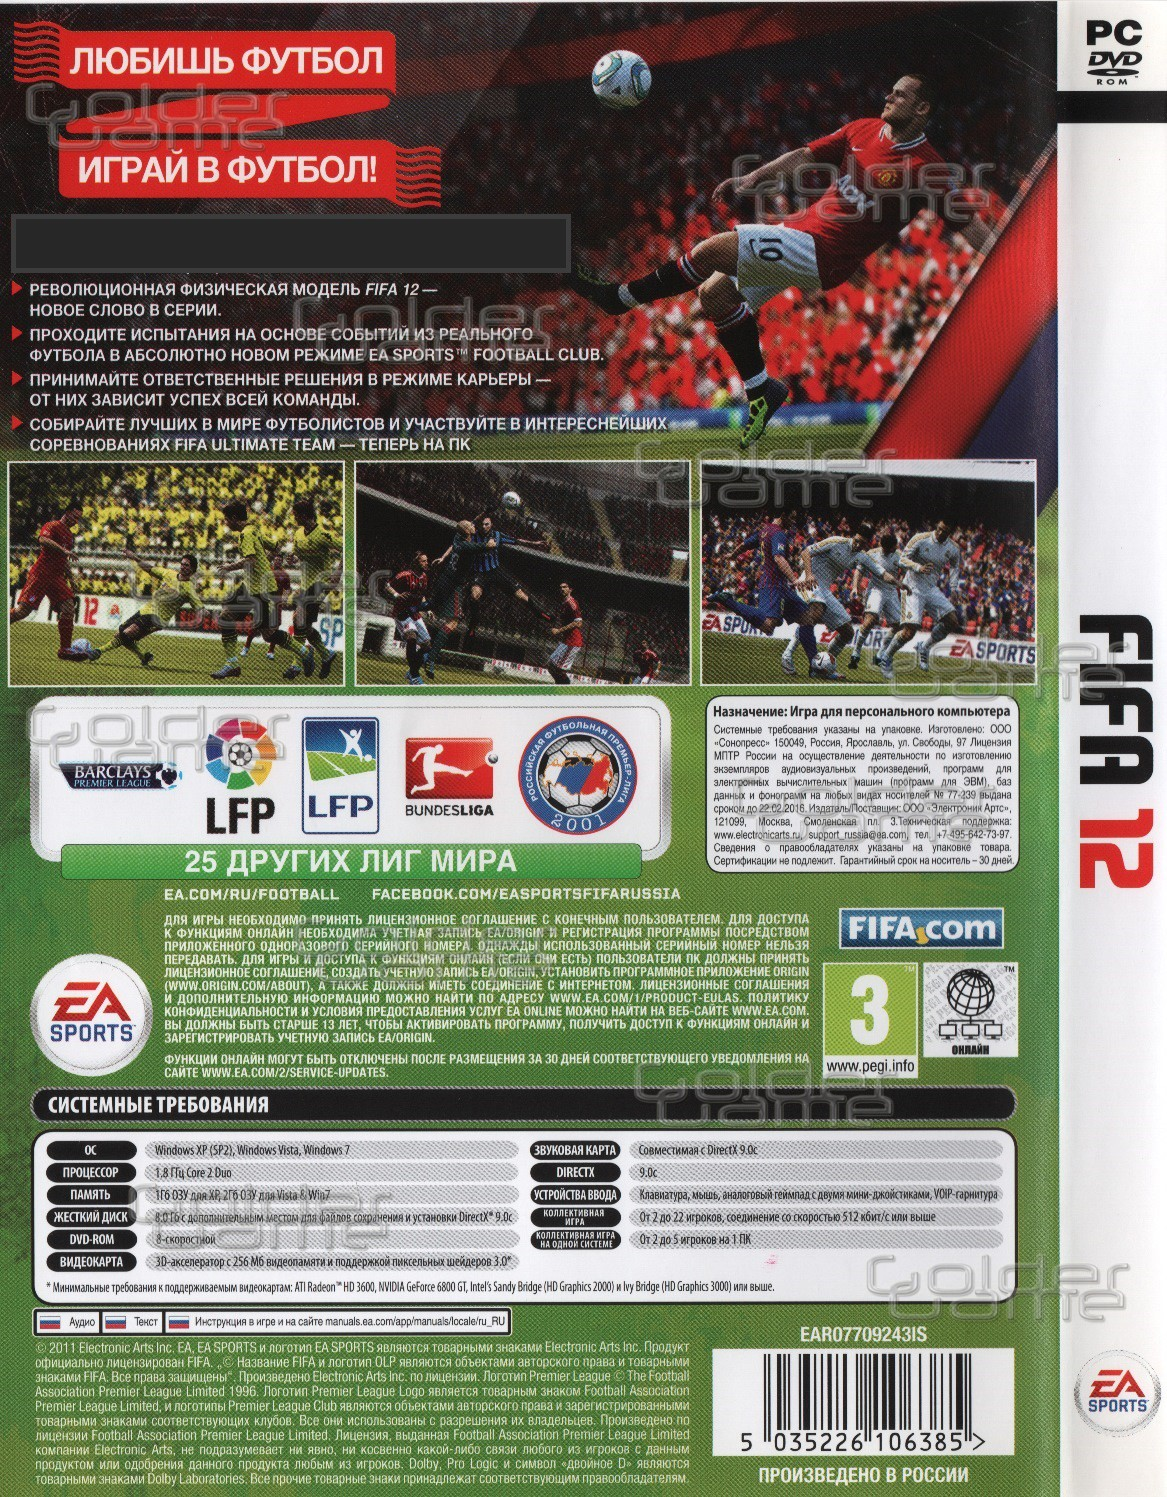 FIFA 12 - Origin - RU - (Photo CD-Key)